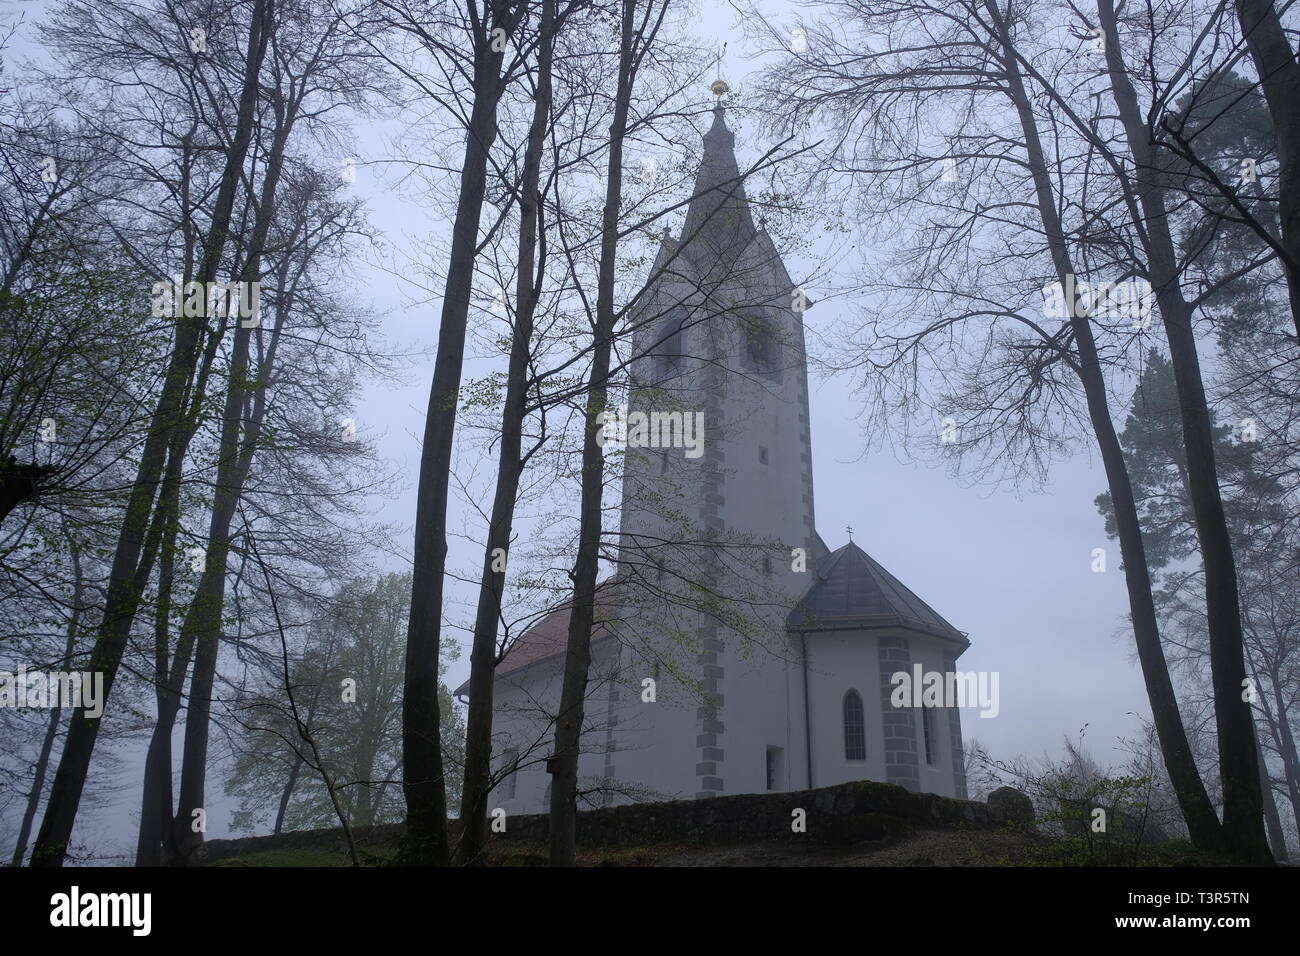 sv-magdalena-church-at-top-of-a-hill-on-forest-on-a-foggy-misty-morning-view-from-low-through-the-trees-in-slovenia-T3R5TN.jpg